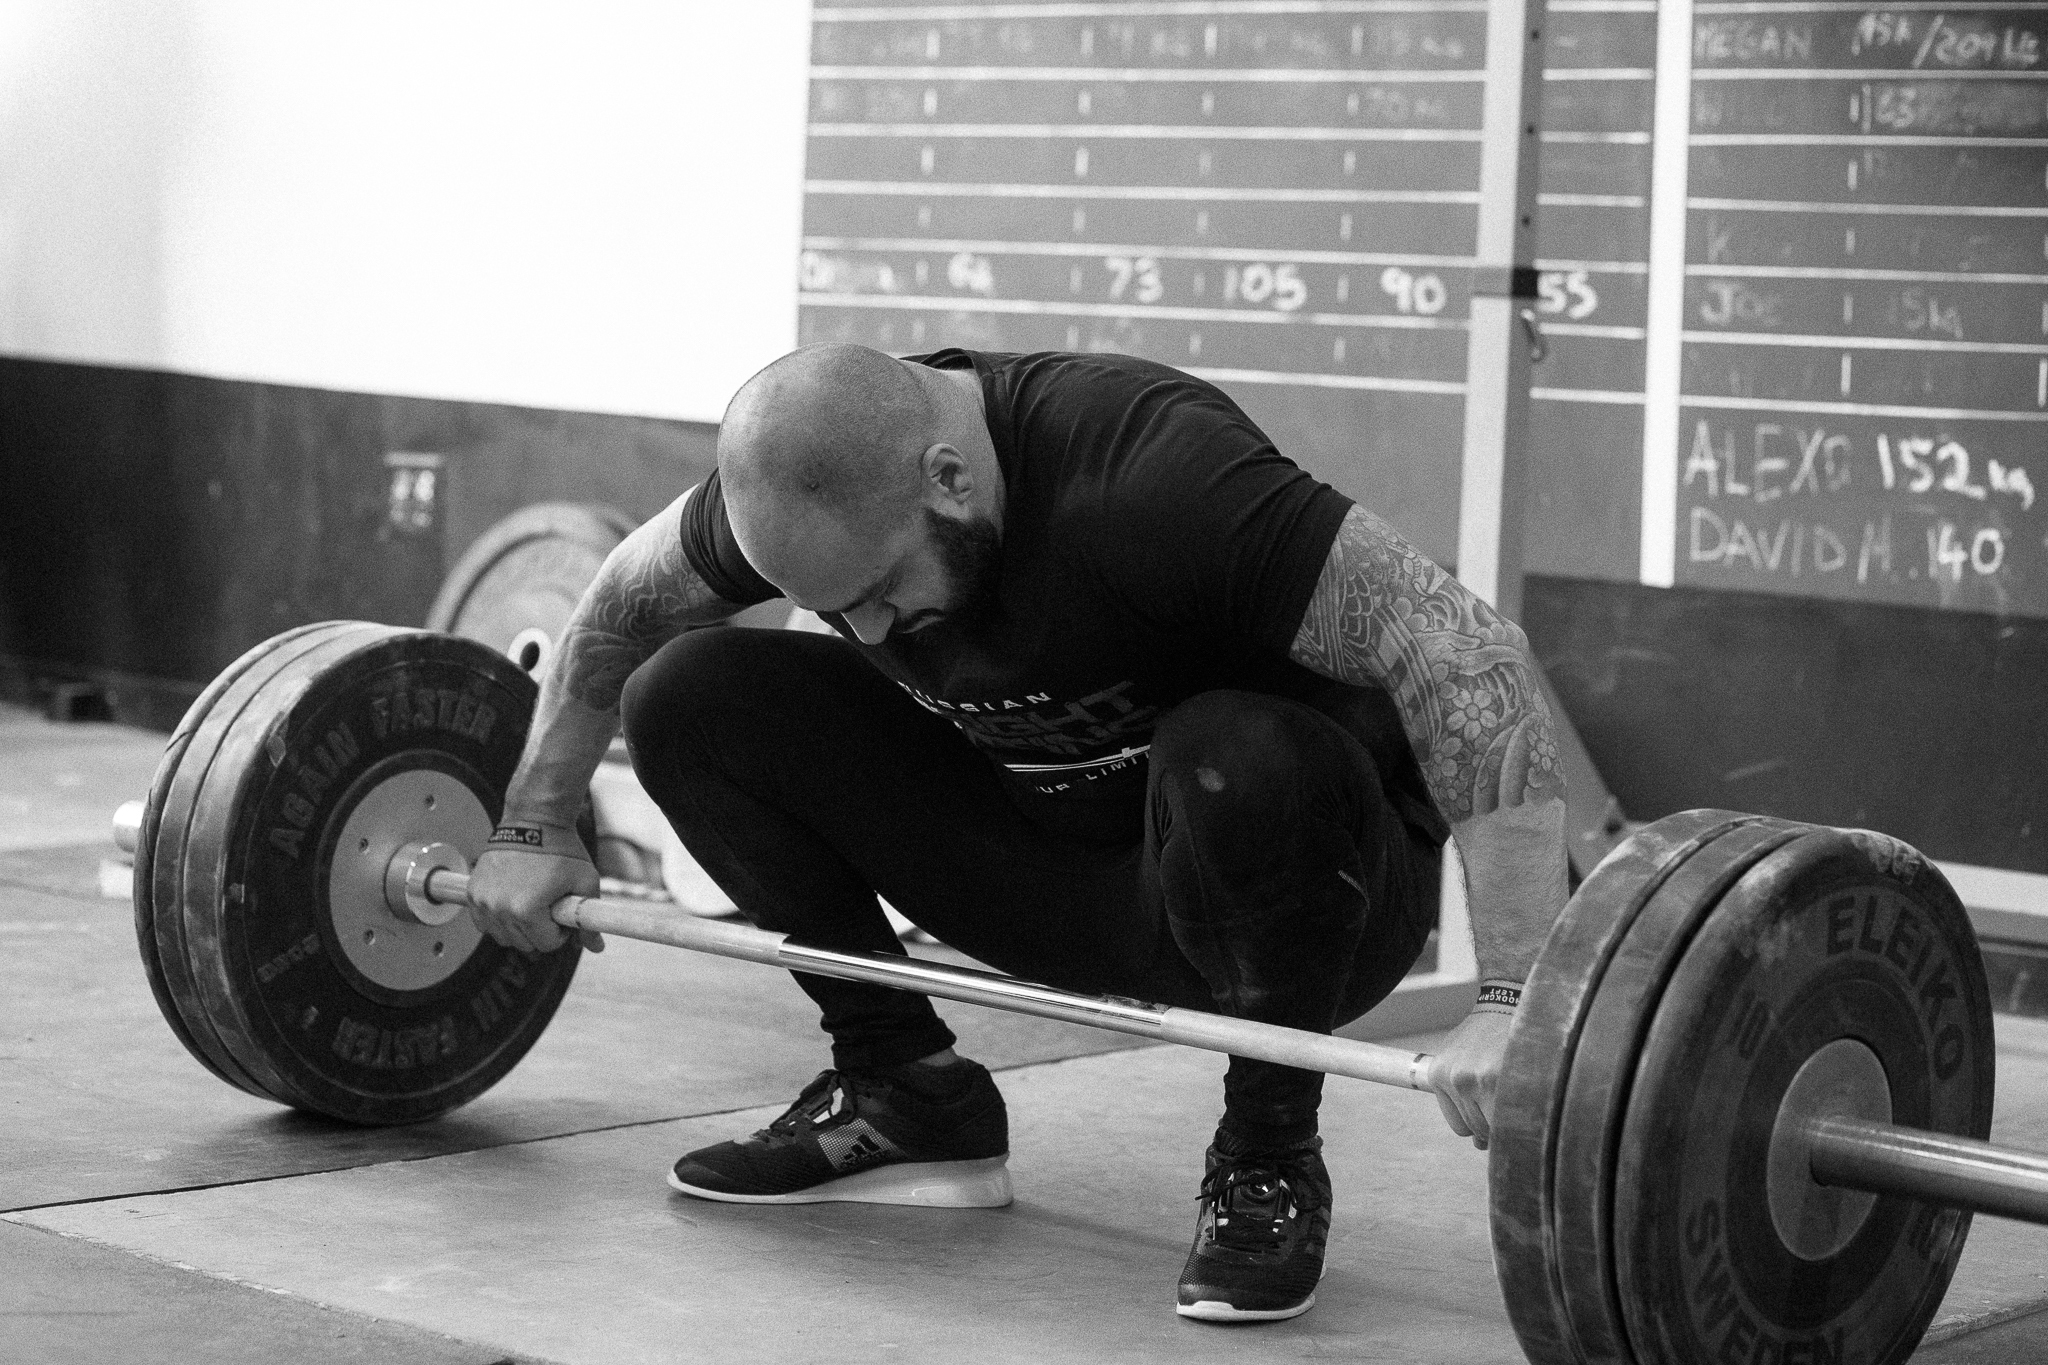 james-wright-weightlifting-coach-3.jpg